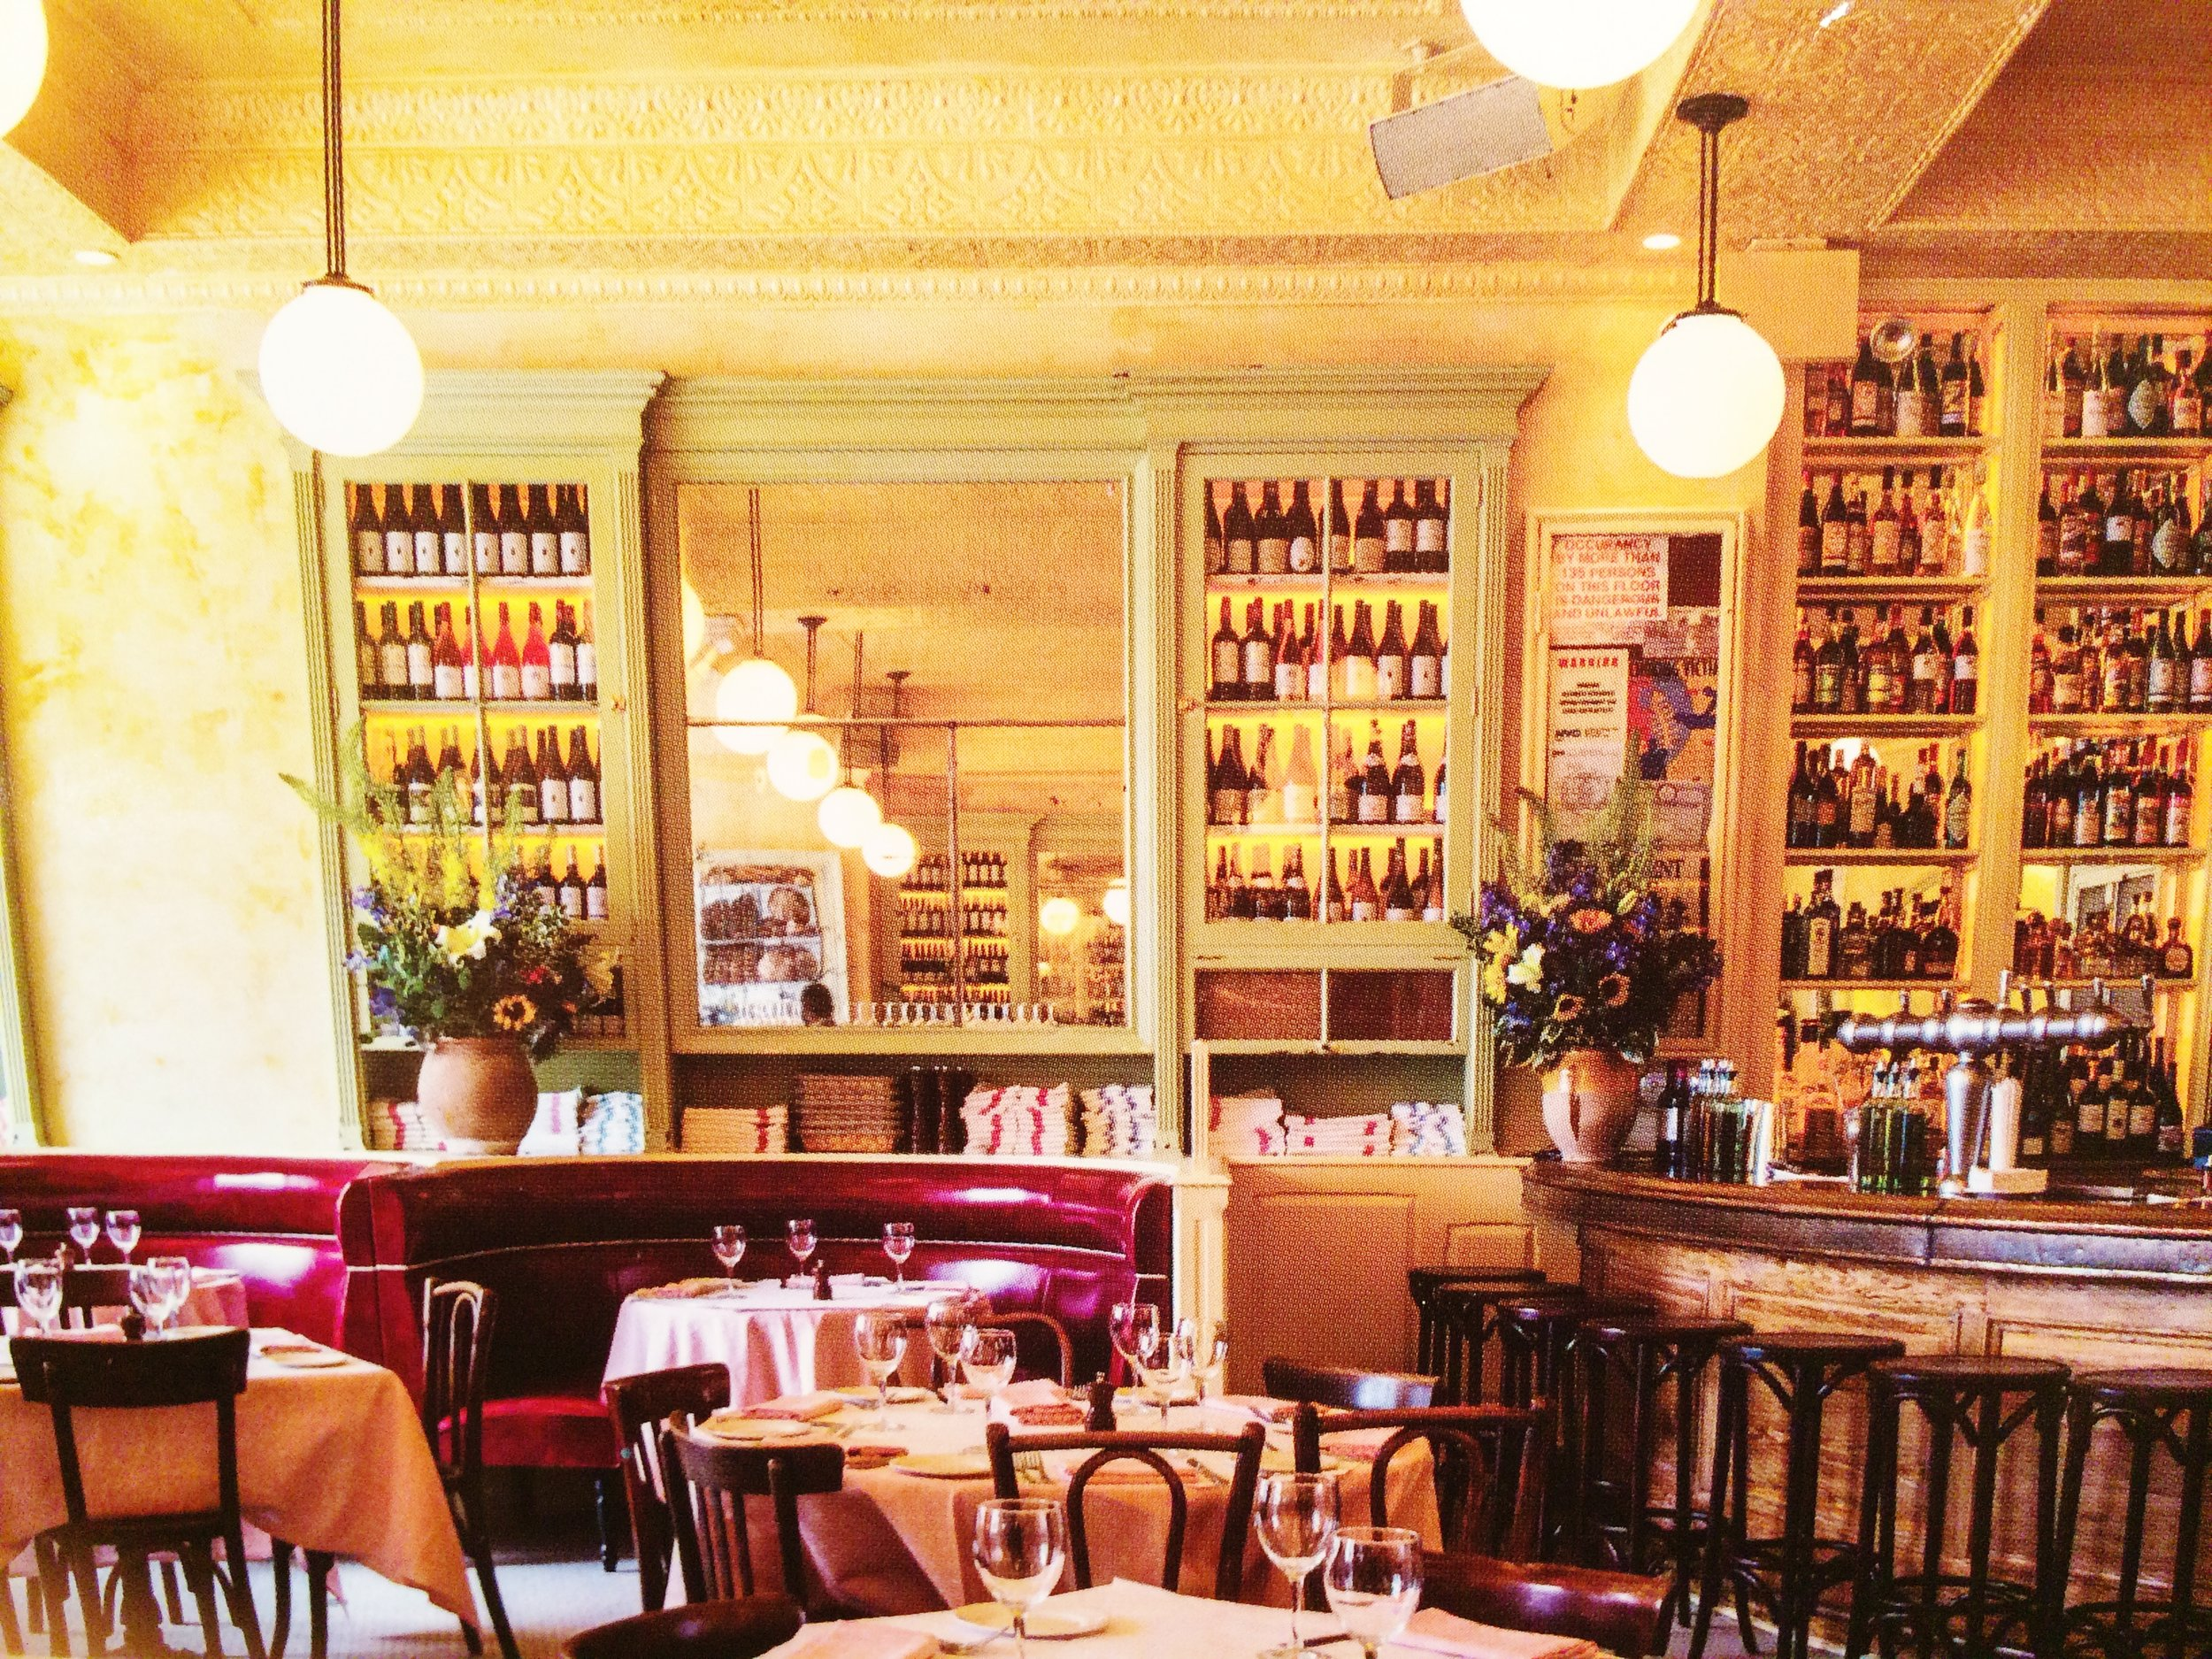 with Minutes to go before the crowd arrives....at Cherche Midi on the LES